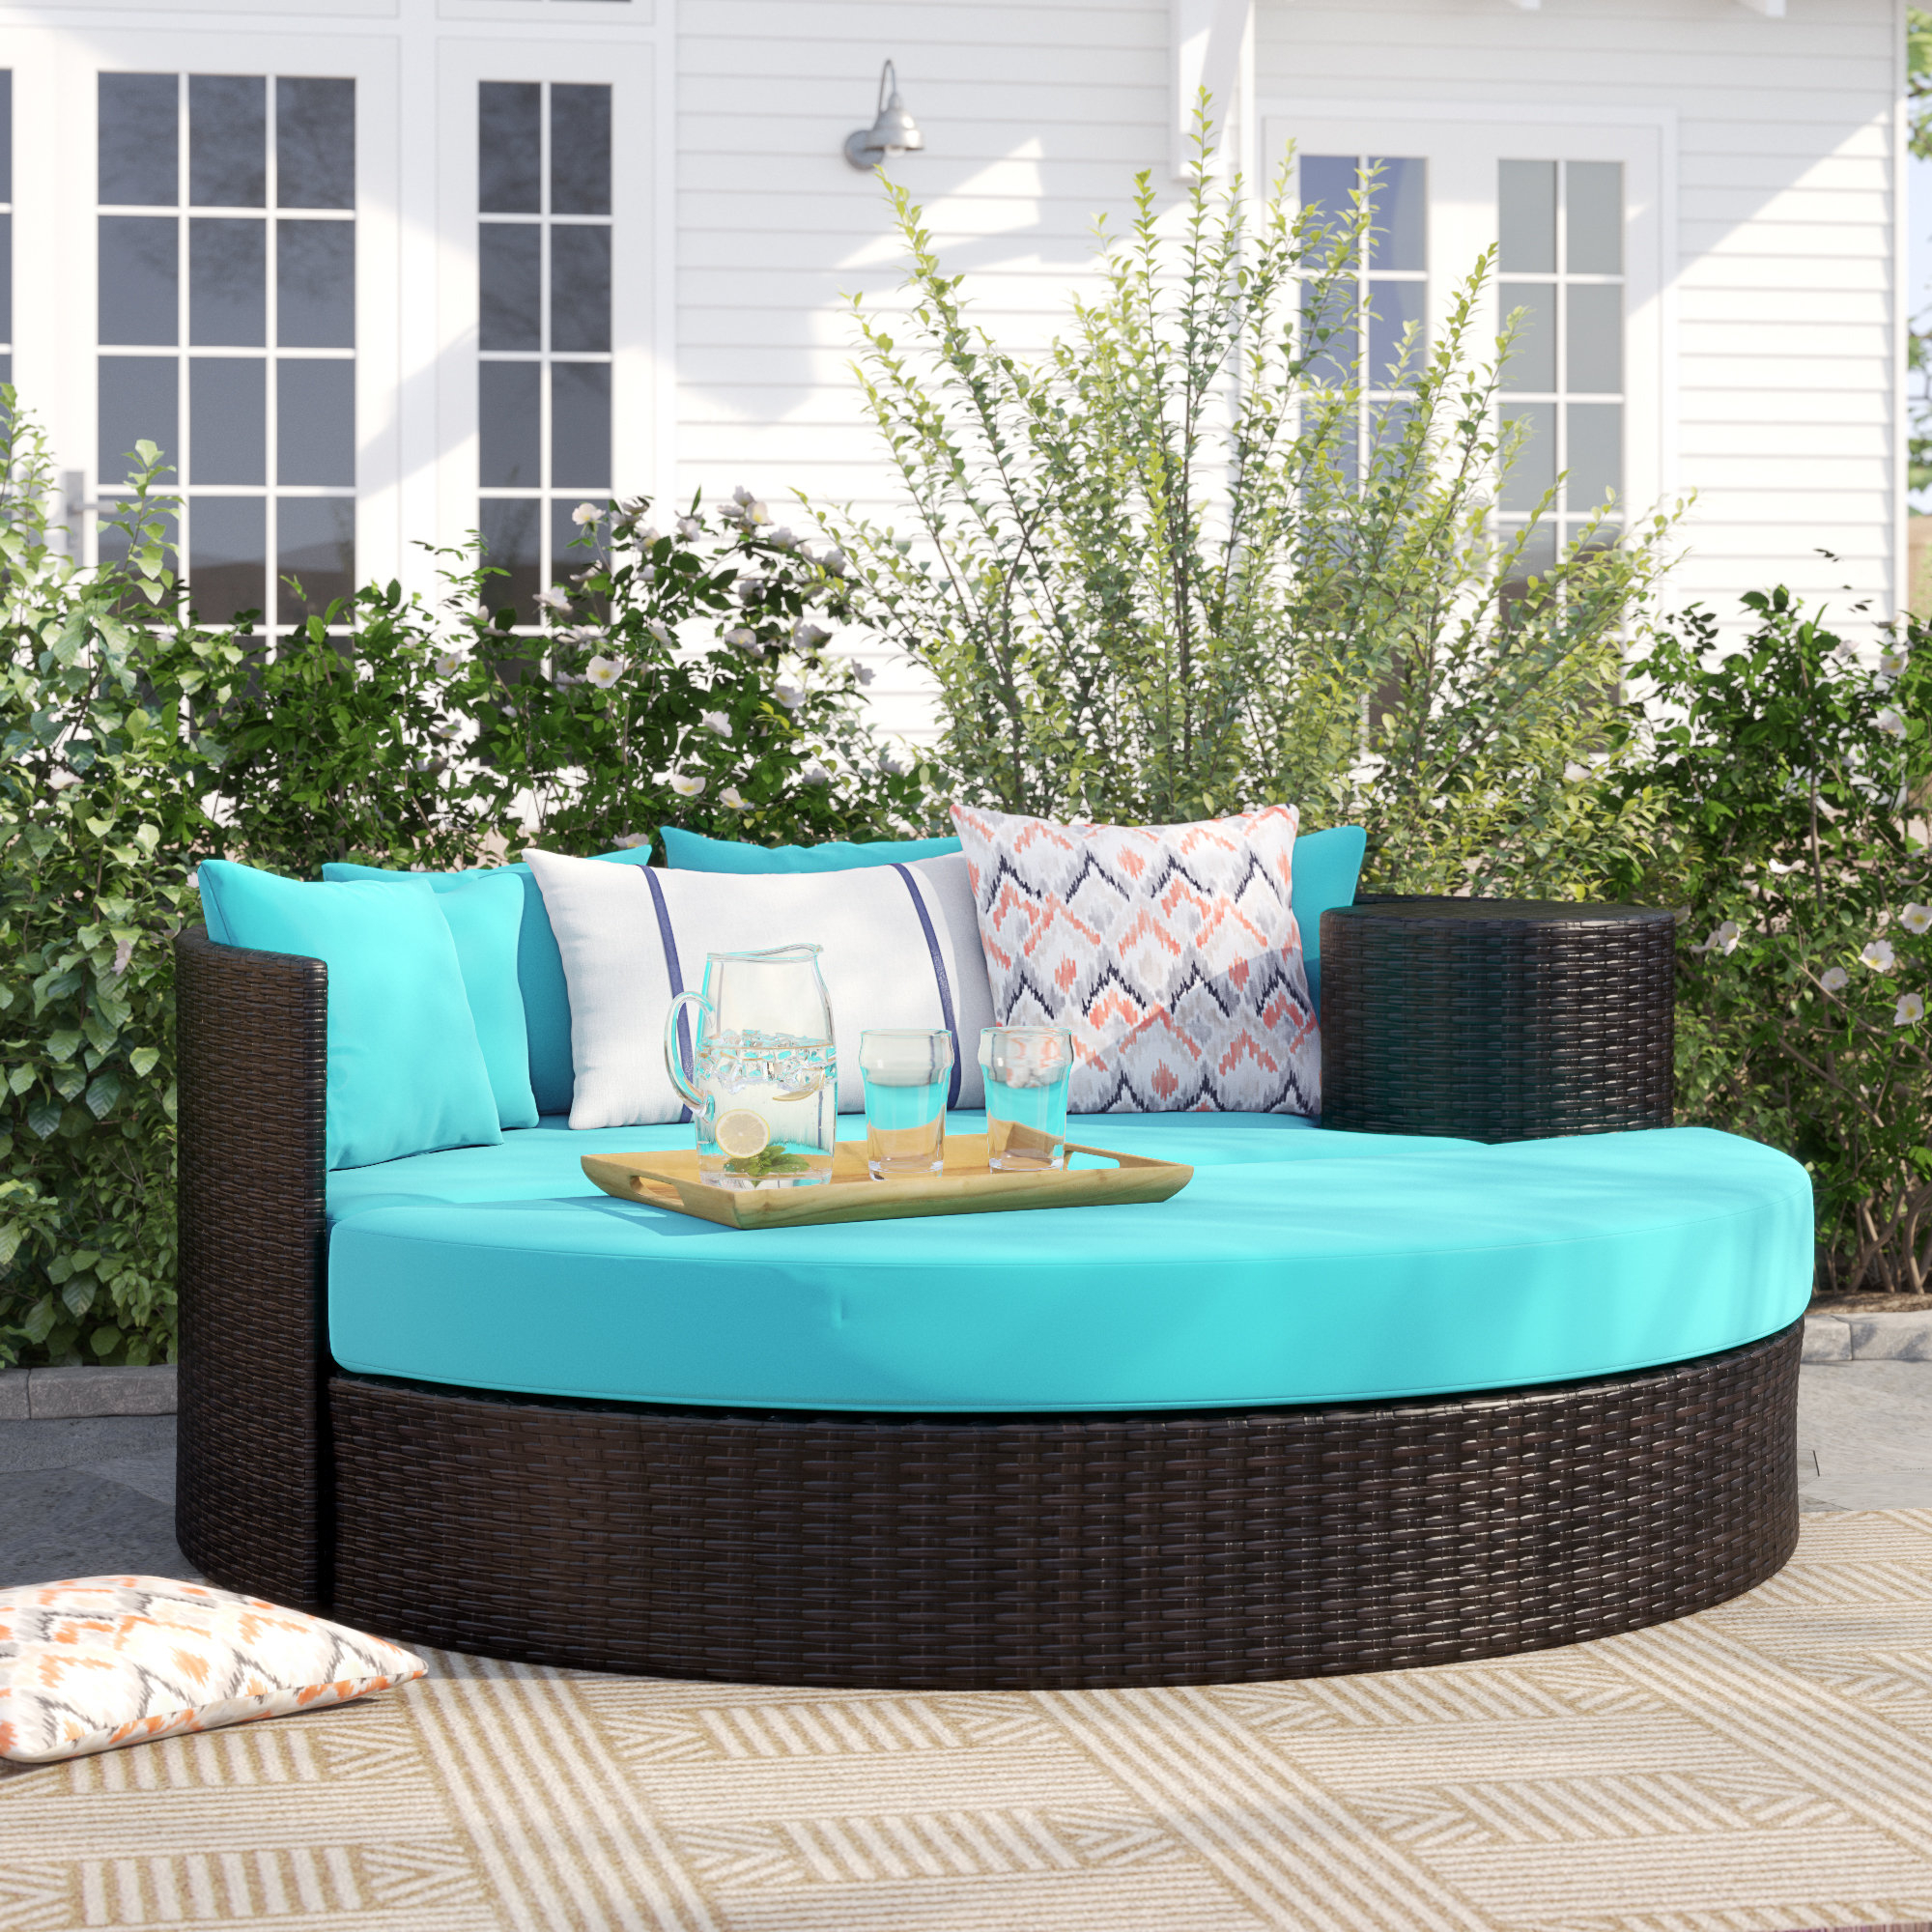 Well Liked Sol 72 Outdoor Freeport Patio Daybed With Cushion & Reviews With Leiston Round Patio Daybeds With Cushions (View 20 of 20)